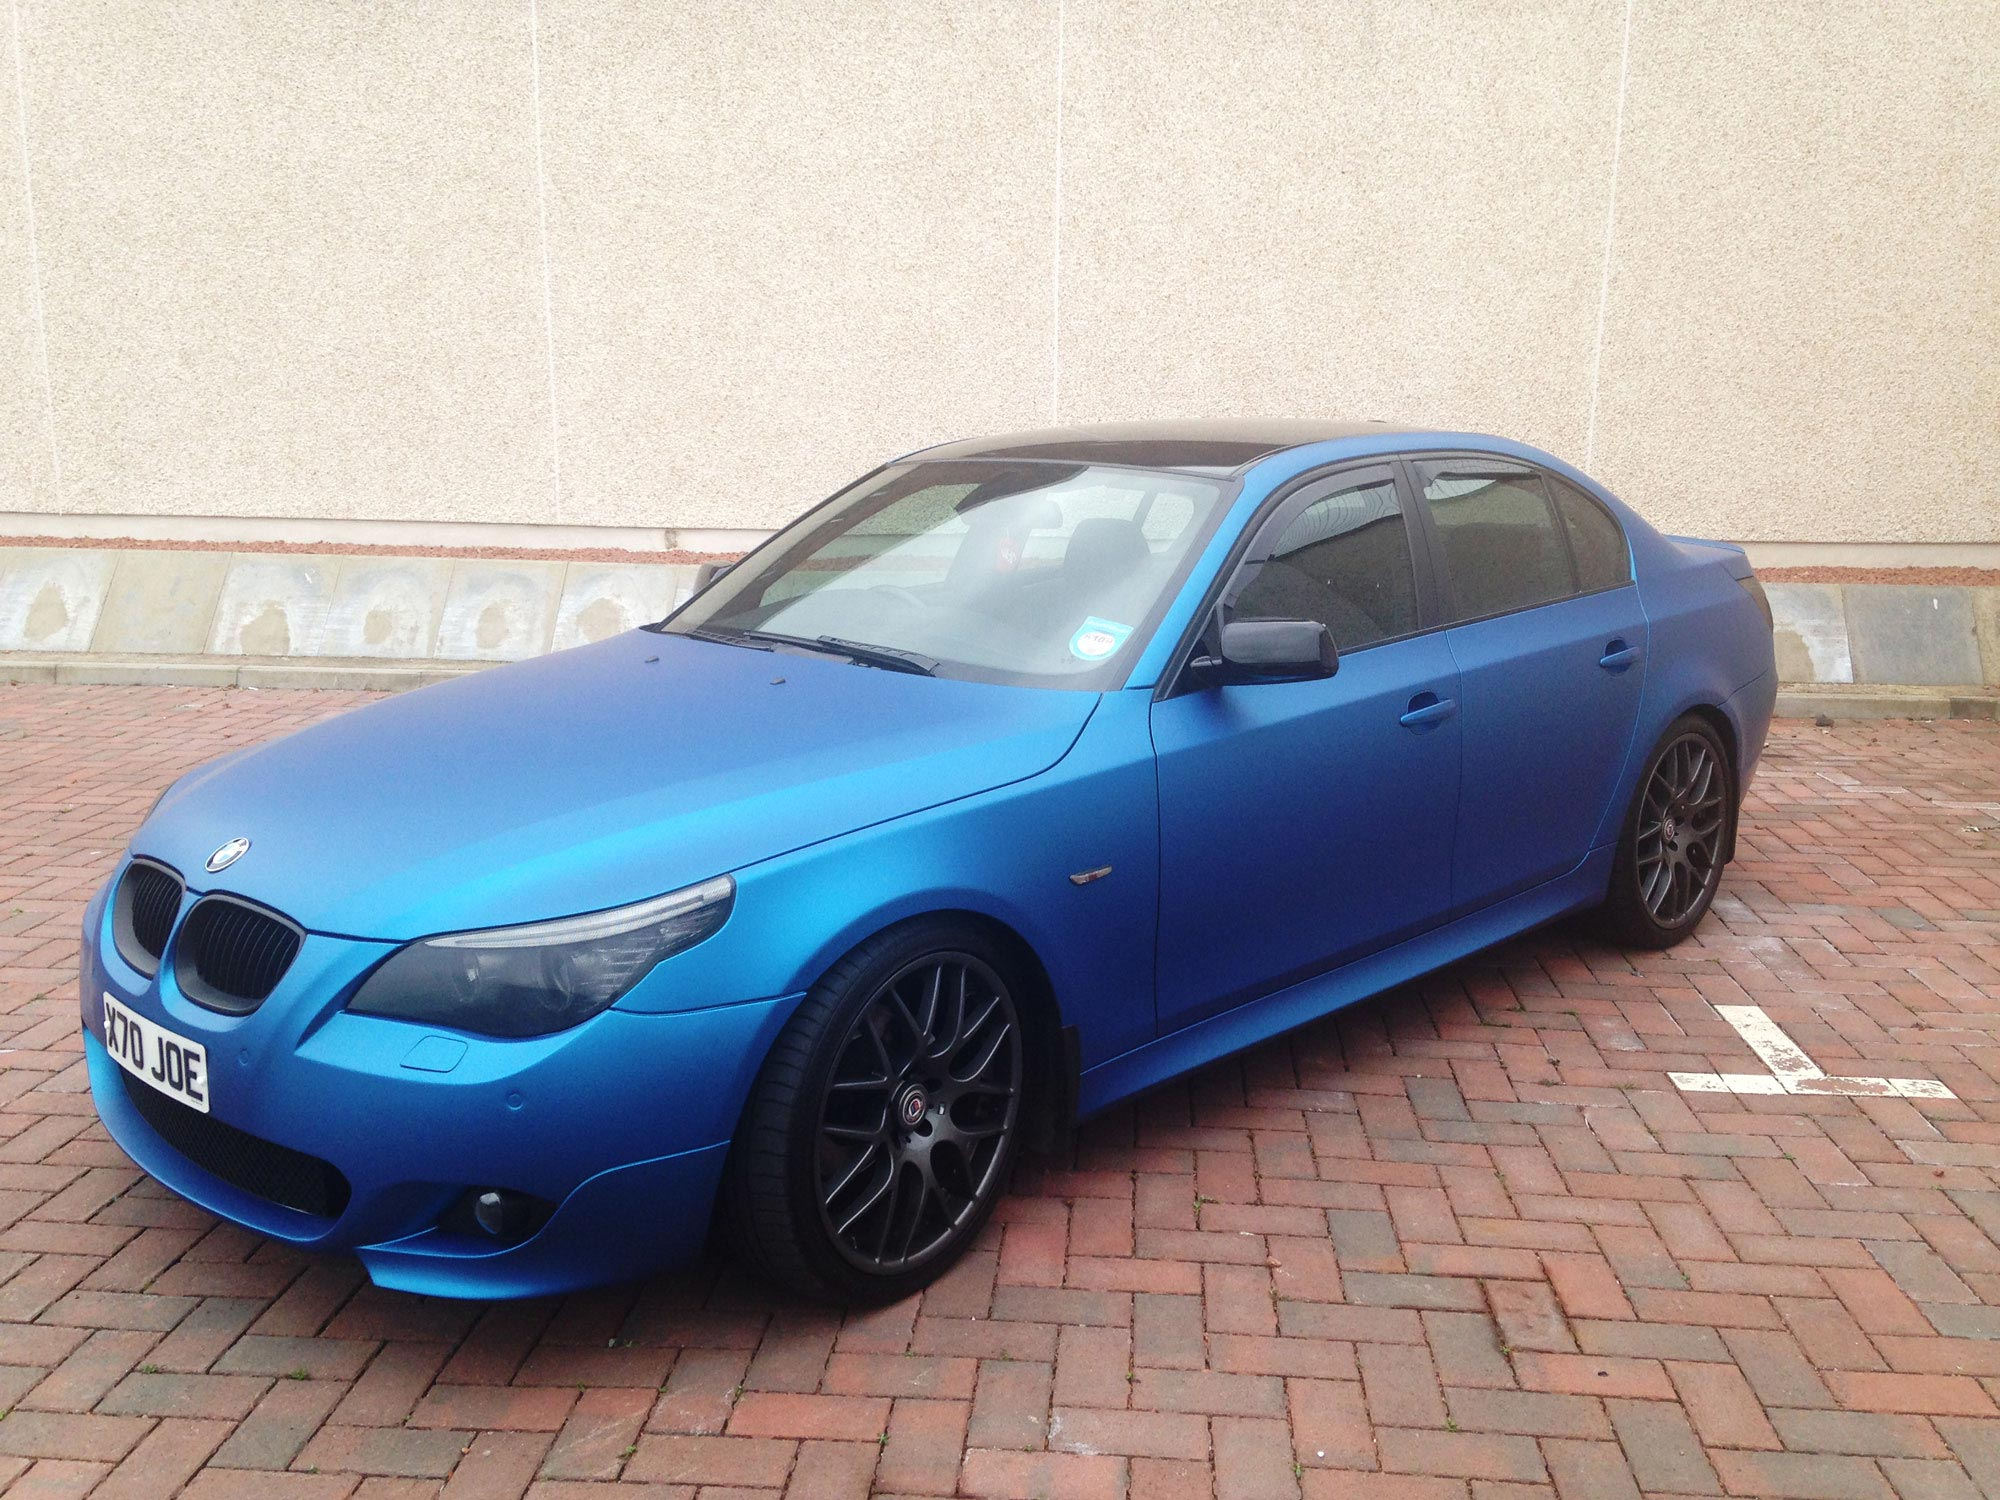 colour car metallic : Bmw 530d M Sport Colour Change Wrapped In Matt Metallic Blue With Matt Black Grill And Gloss Black Roof And Mirrors